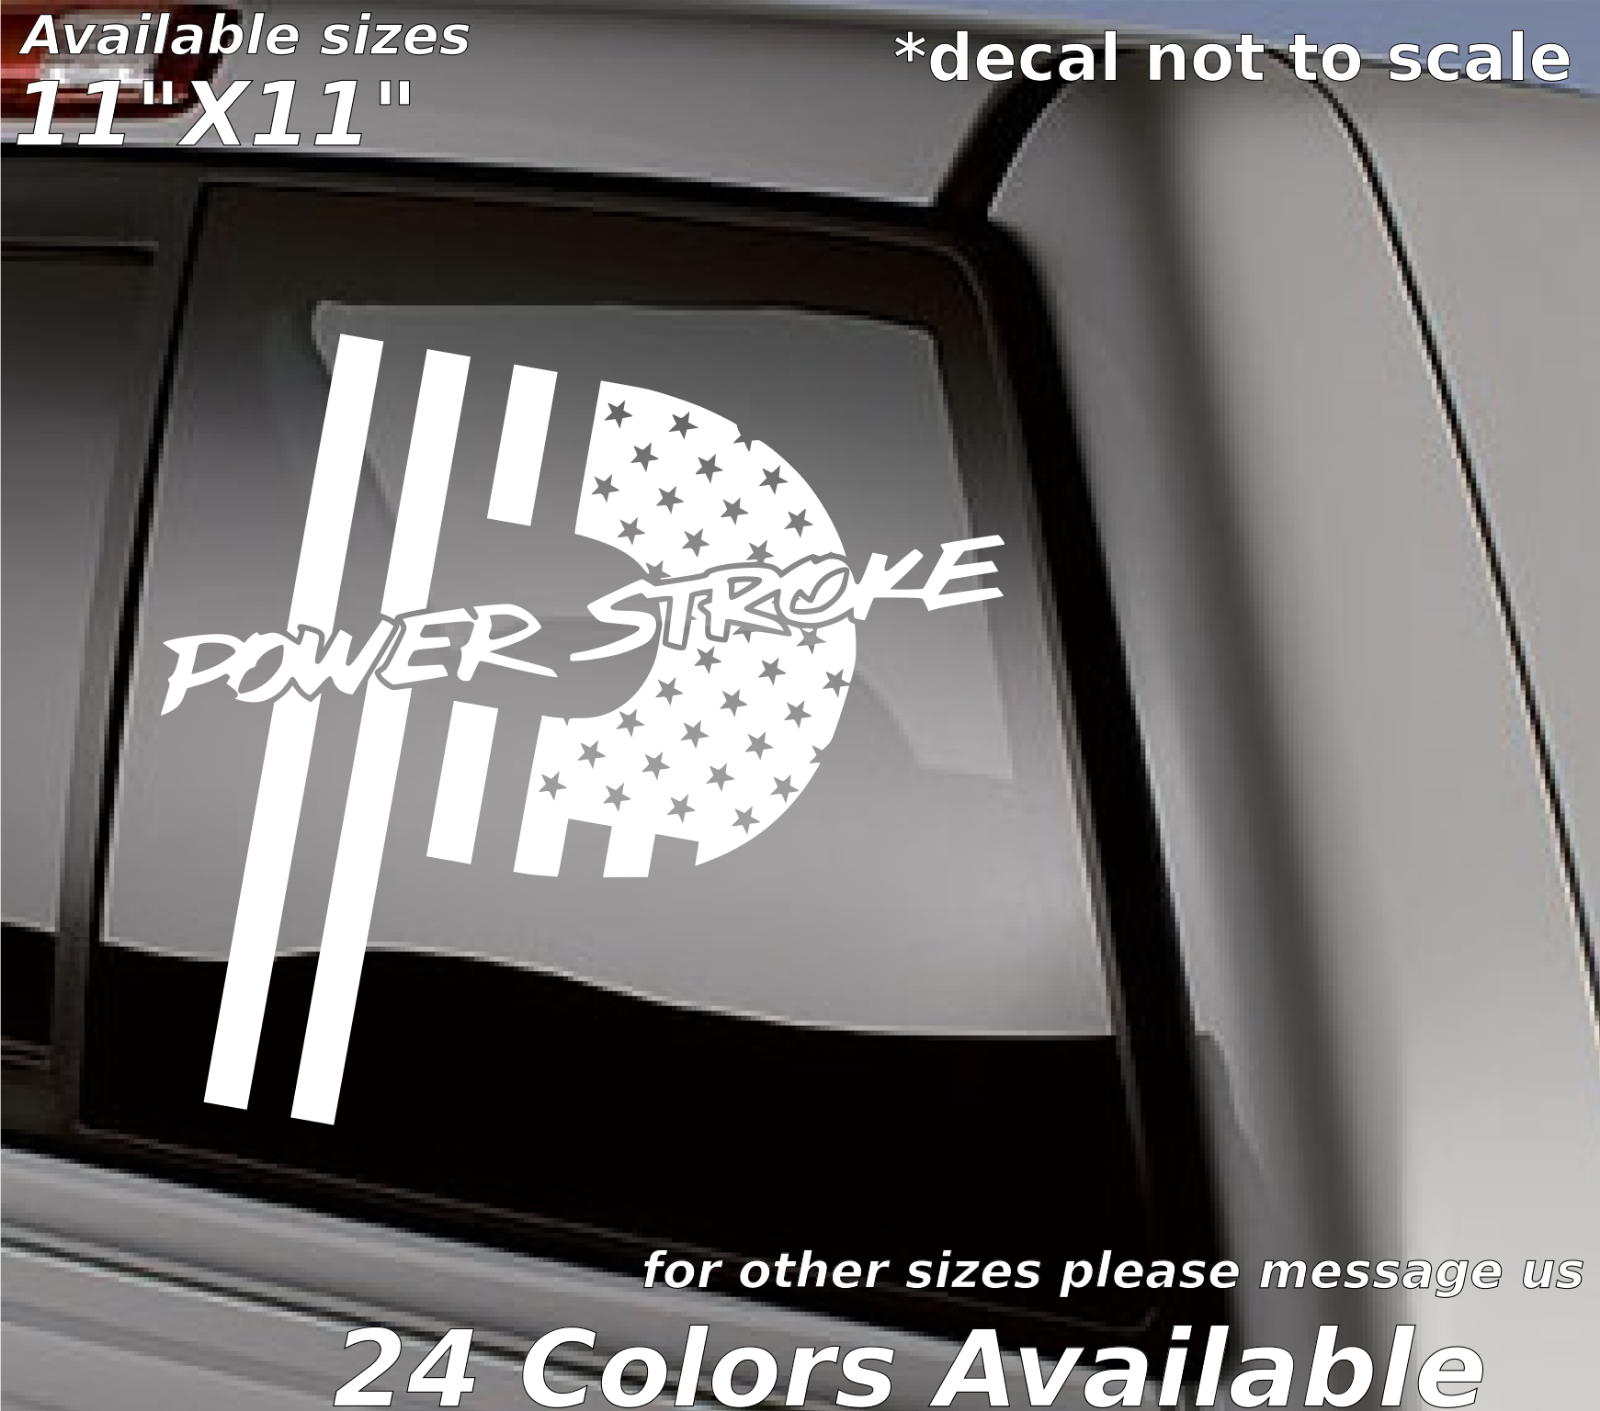 F250 F350 4x4 Vinyl Powerstroke Flag Sticker American Flag Powerstroke Decal